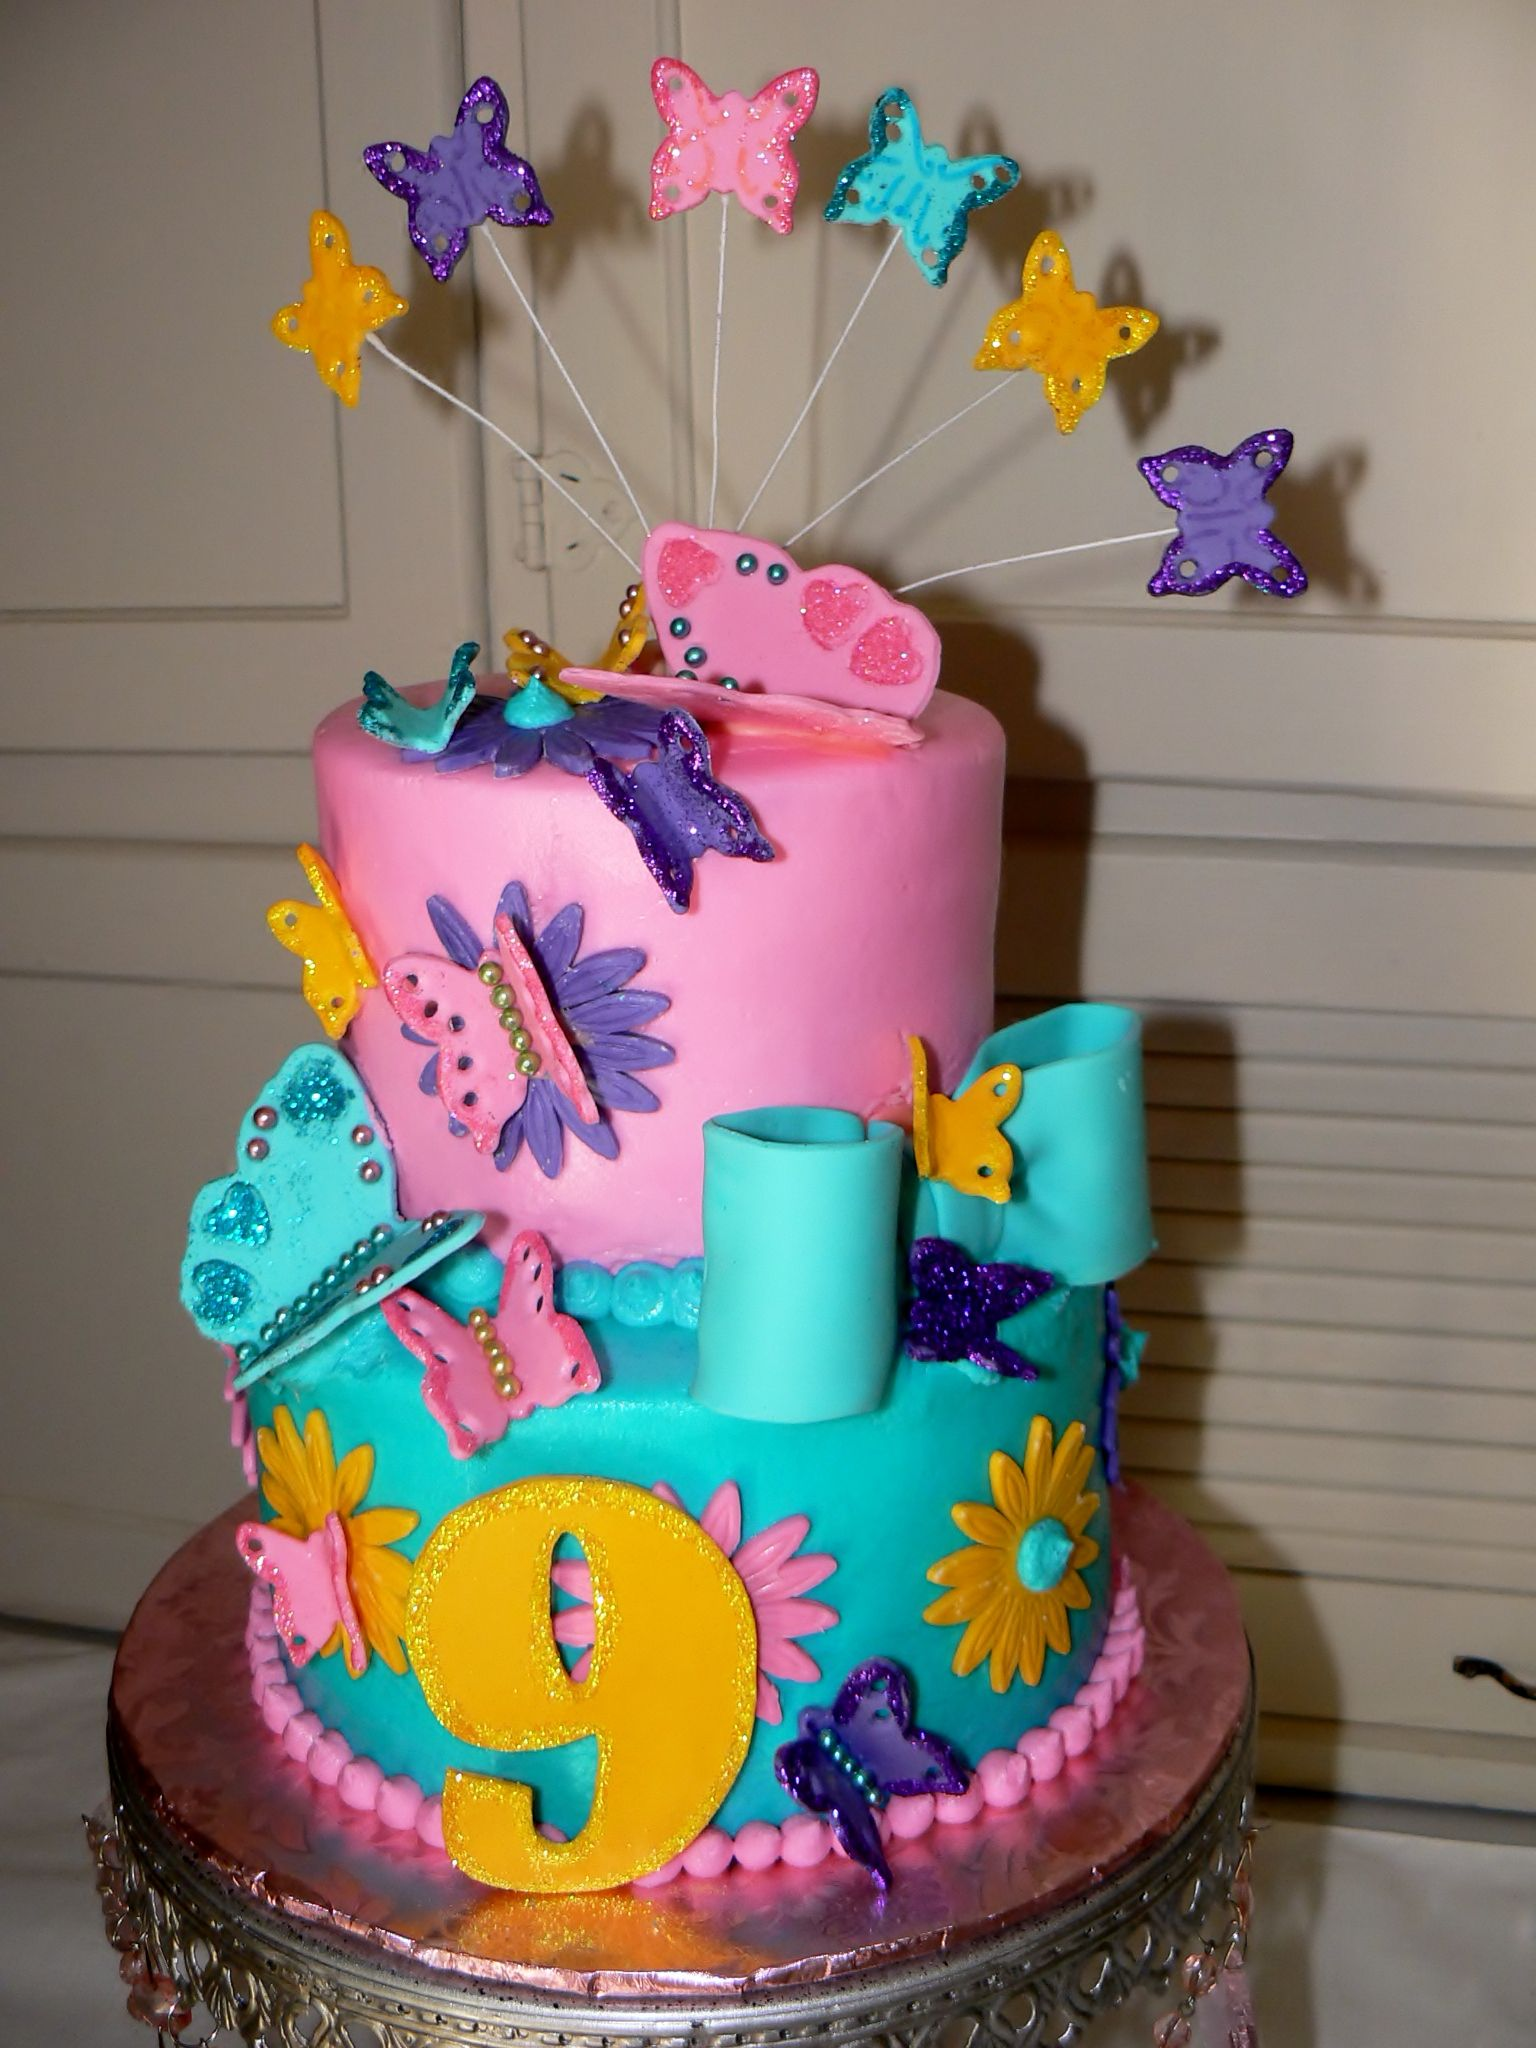 Julie S 9th Birthday Cake With Fondant Butterflies Flowers And